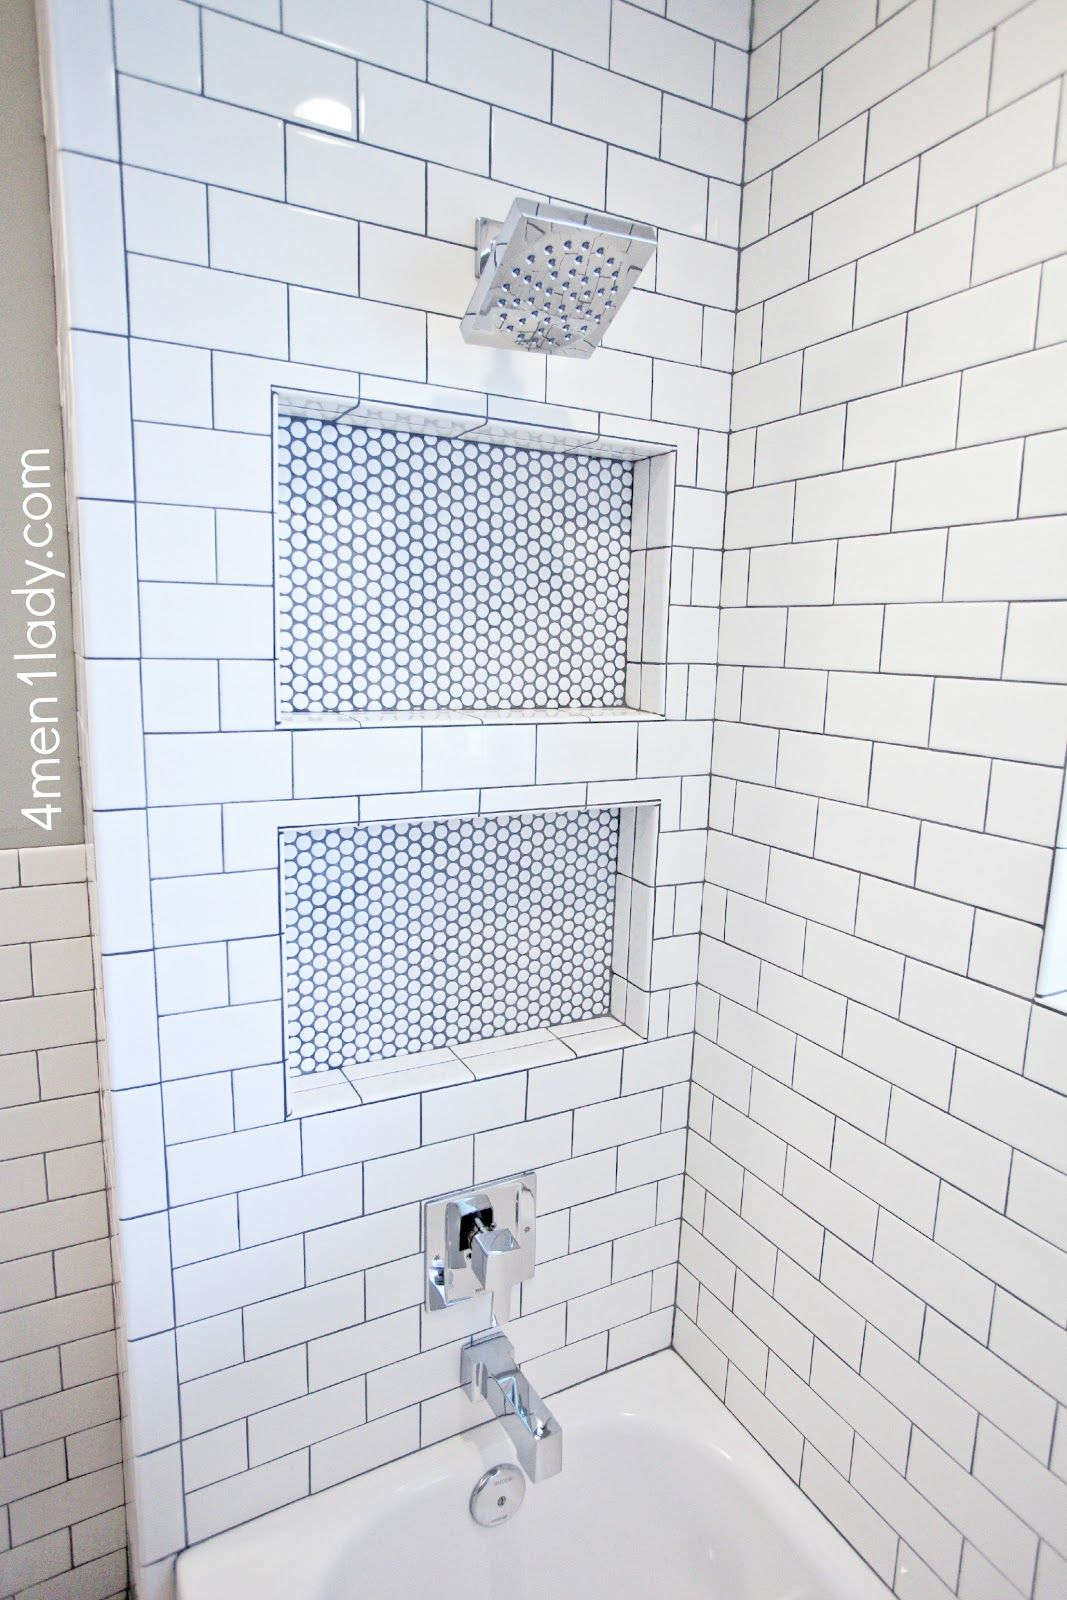 Pearl gray grout | Bath Ideas | Pinterest | Bath, Grey grout and Grout